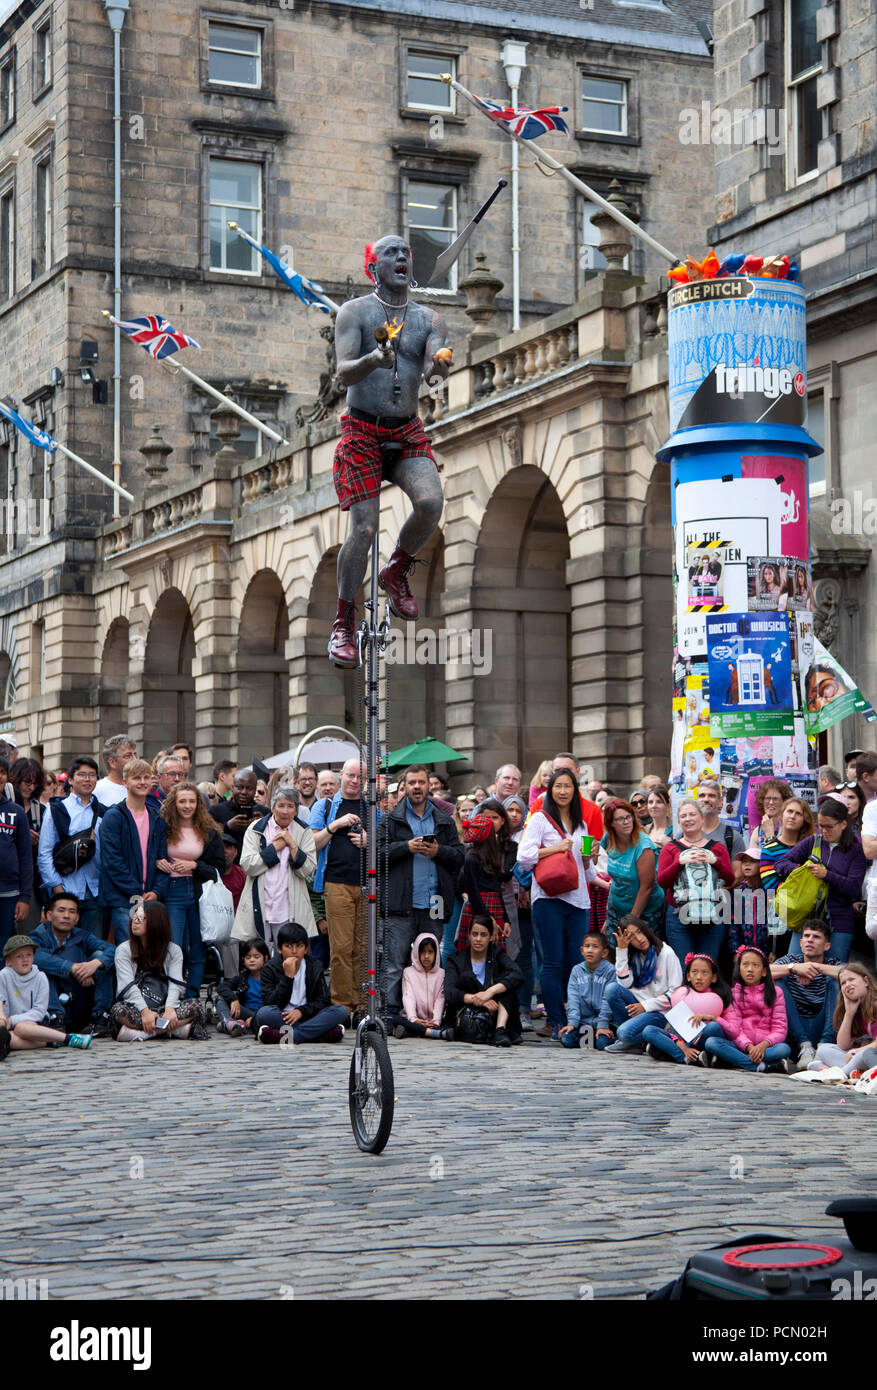 Opening day of 2018 Edinburgh Fringe Festival, Scotland UK, 3 Aug.2018. Big audiences for the street performers on the city's Royal Mile for the first day of the 2018 Edinburgh Fringe Festival. - Stock Image